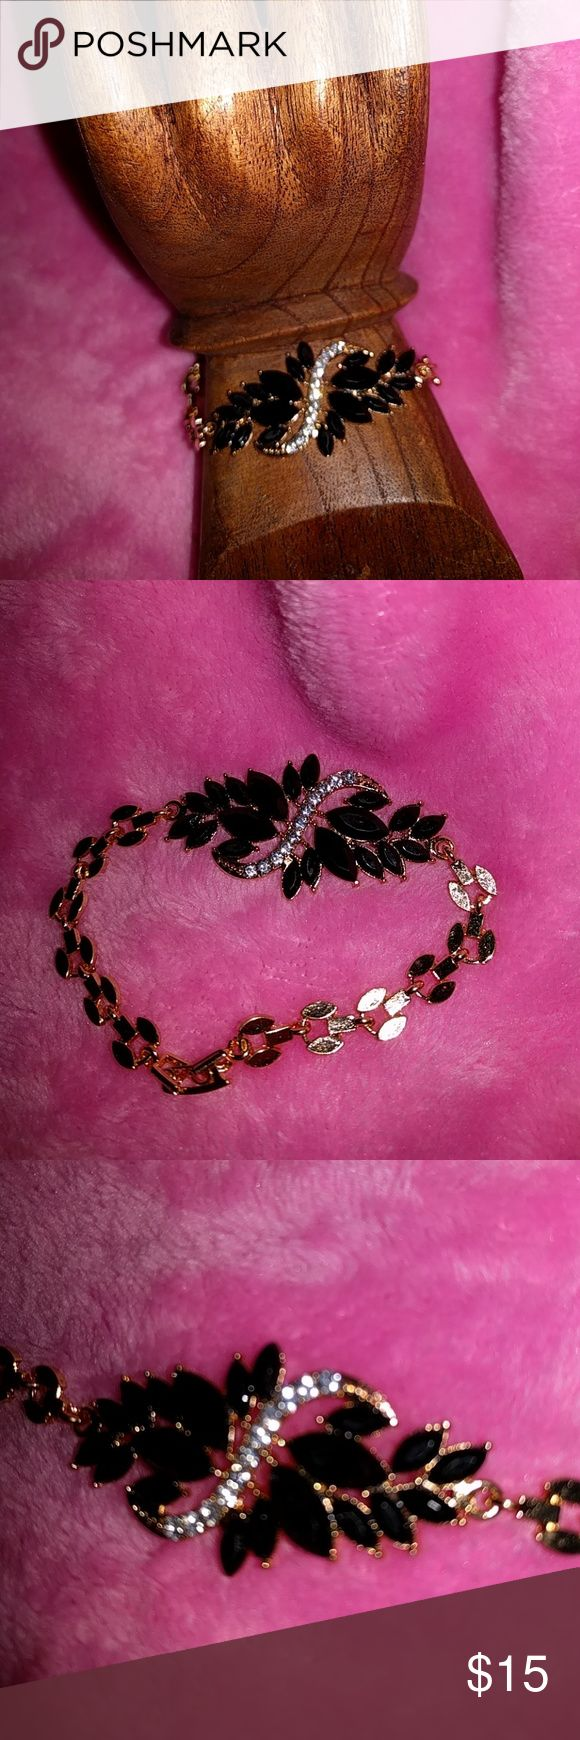 Beautiful Bracelet This beautiful bracelet with black stones and diamond like stones is just gorgeous. The blackstones hour of a Marquise shape in various sizes. The bracelet has a gold chain and a clasp. This is just a fun bracelet to wear. Accessories